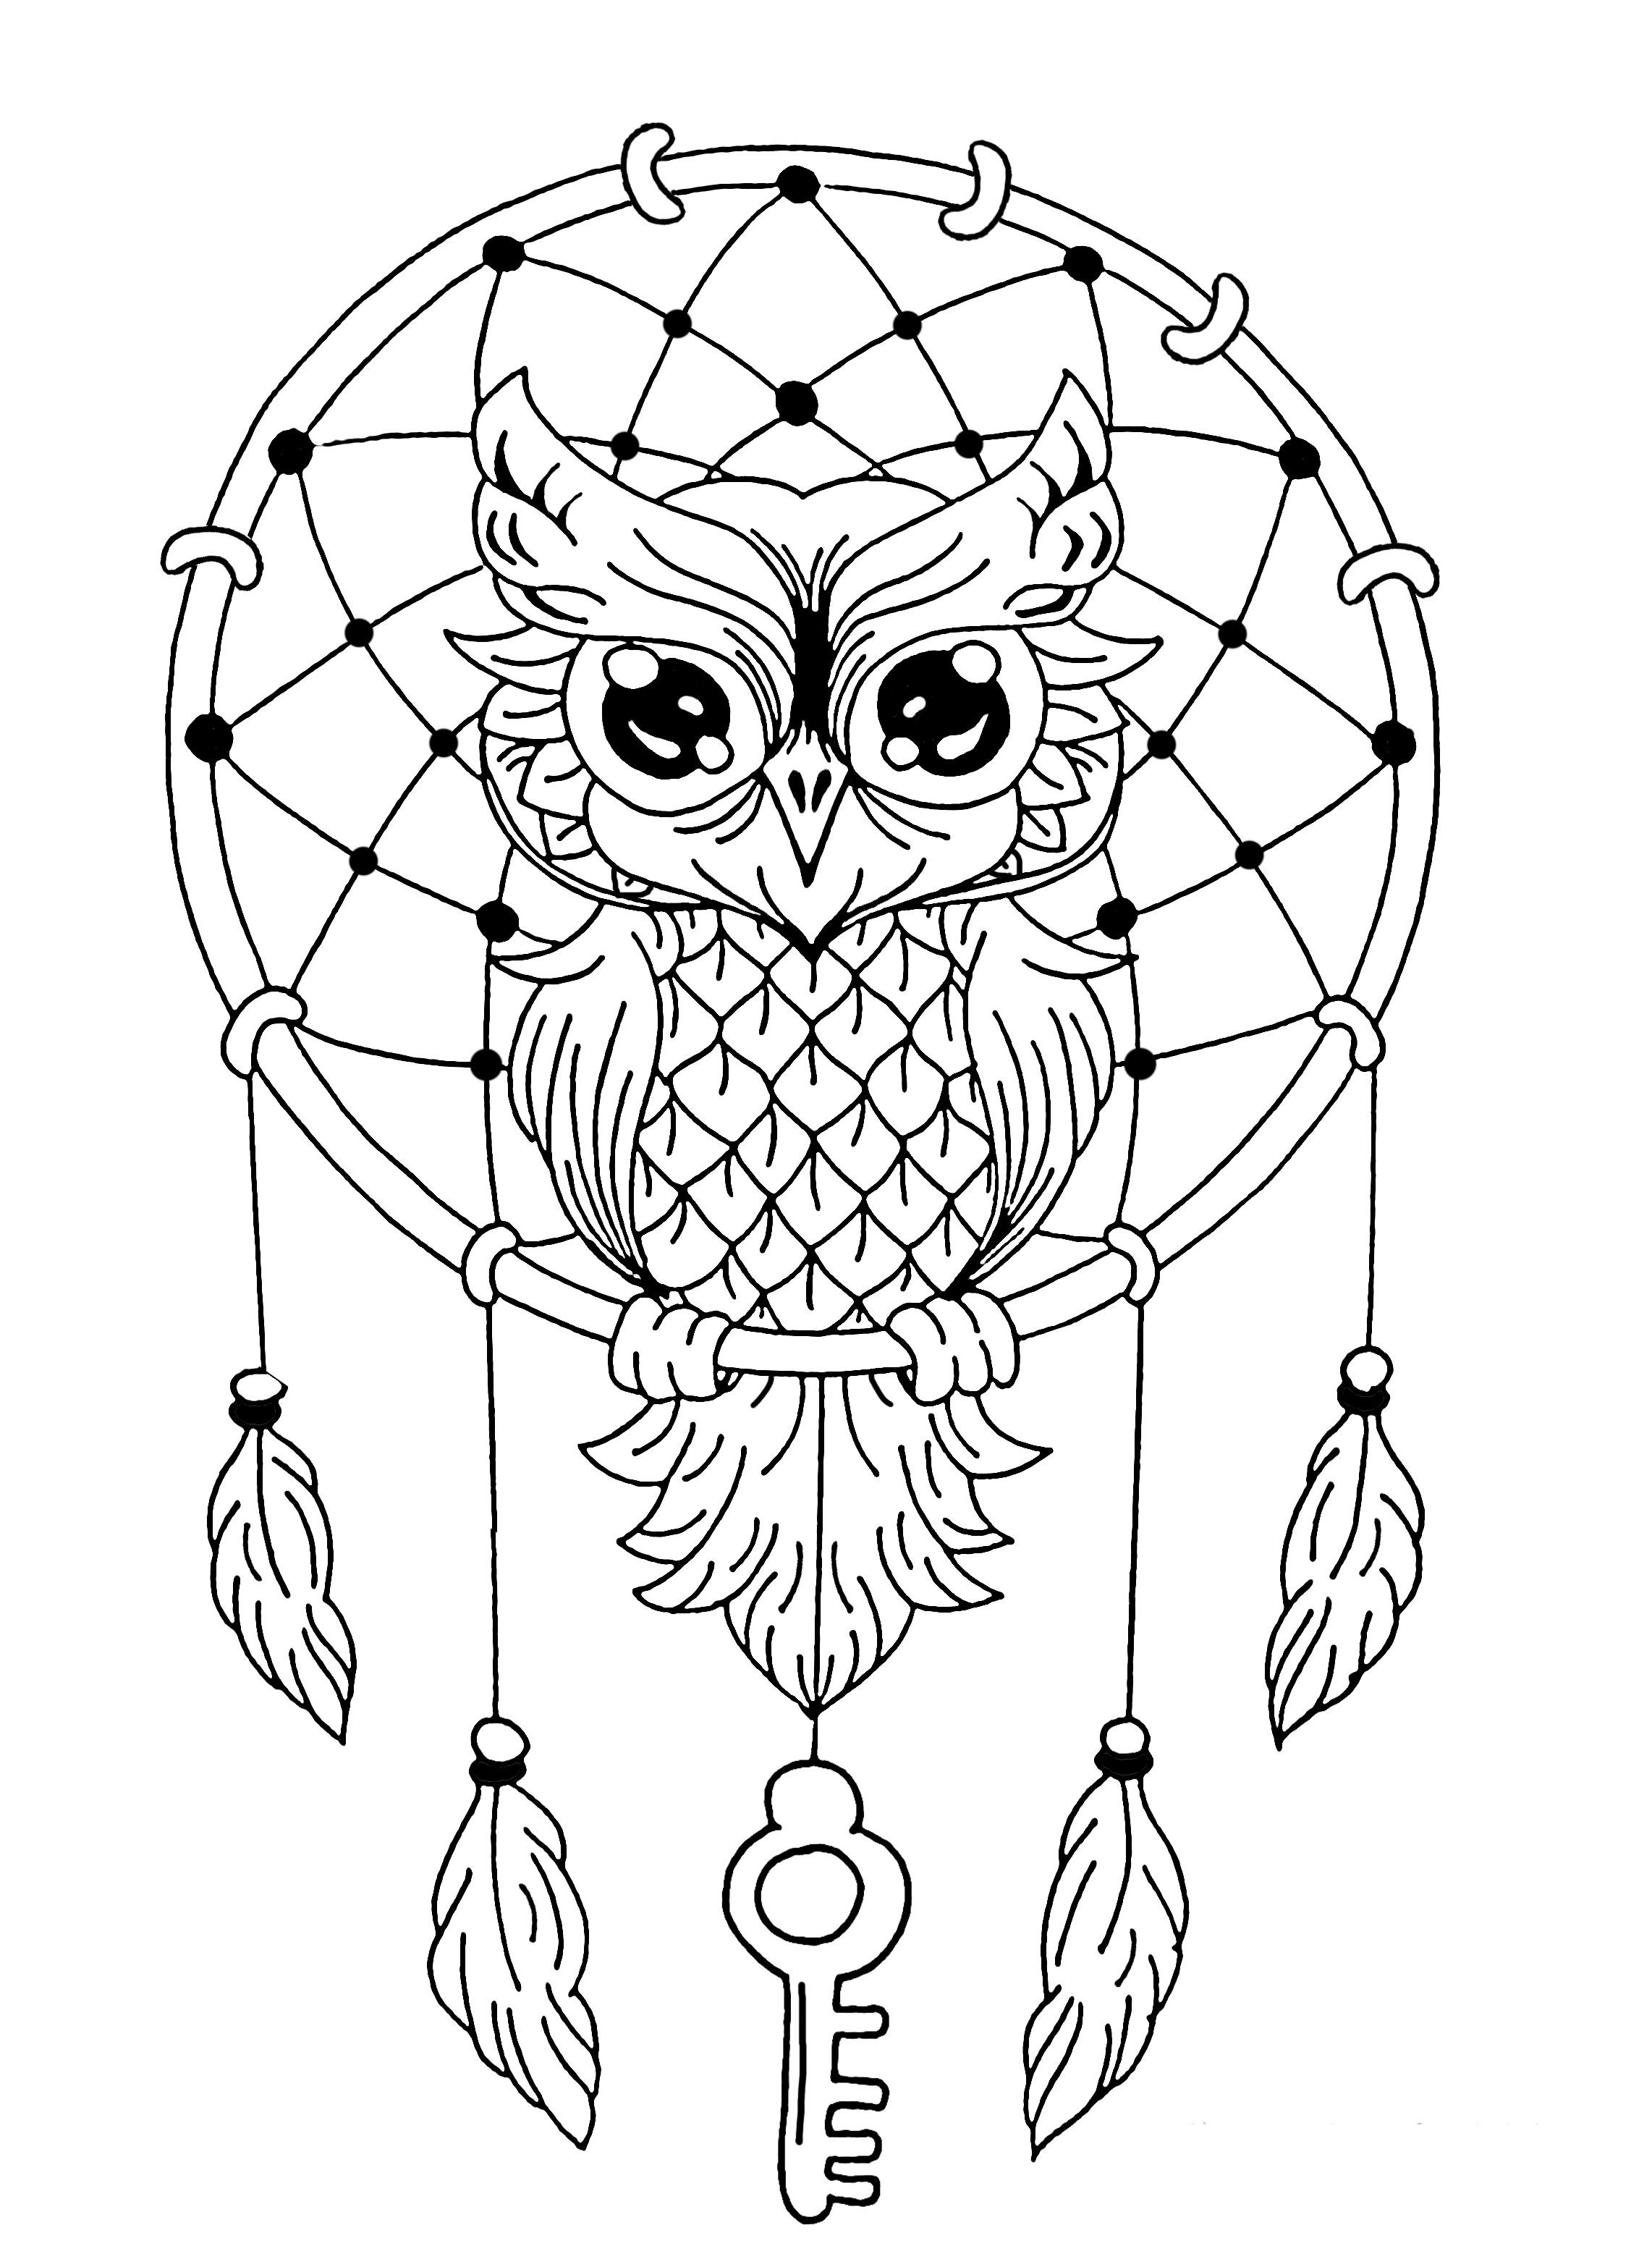 complex coloring pages online - photo#21